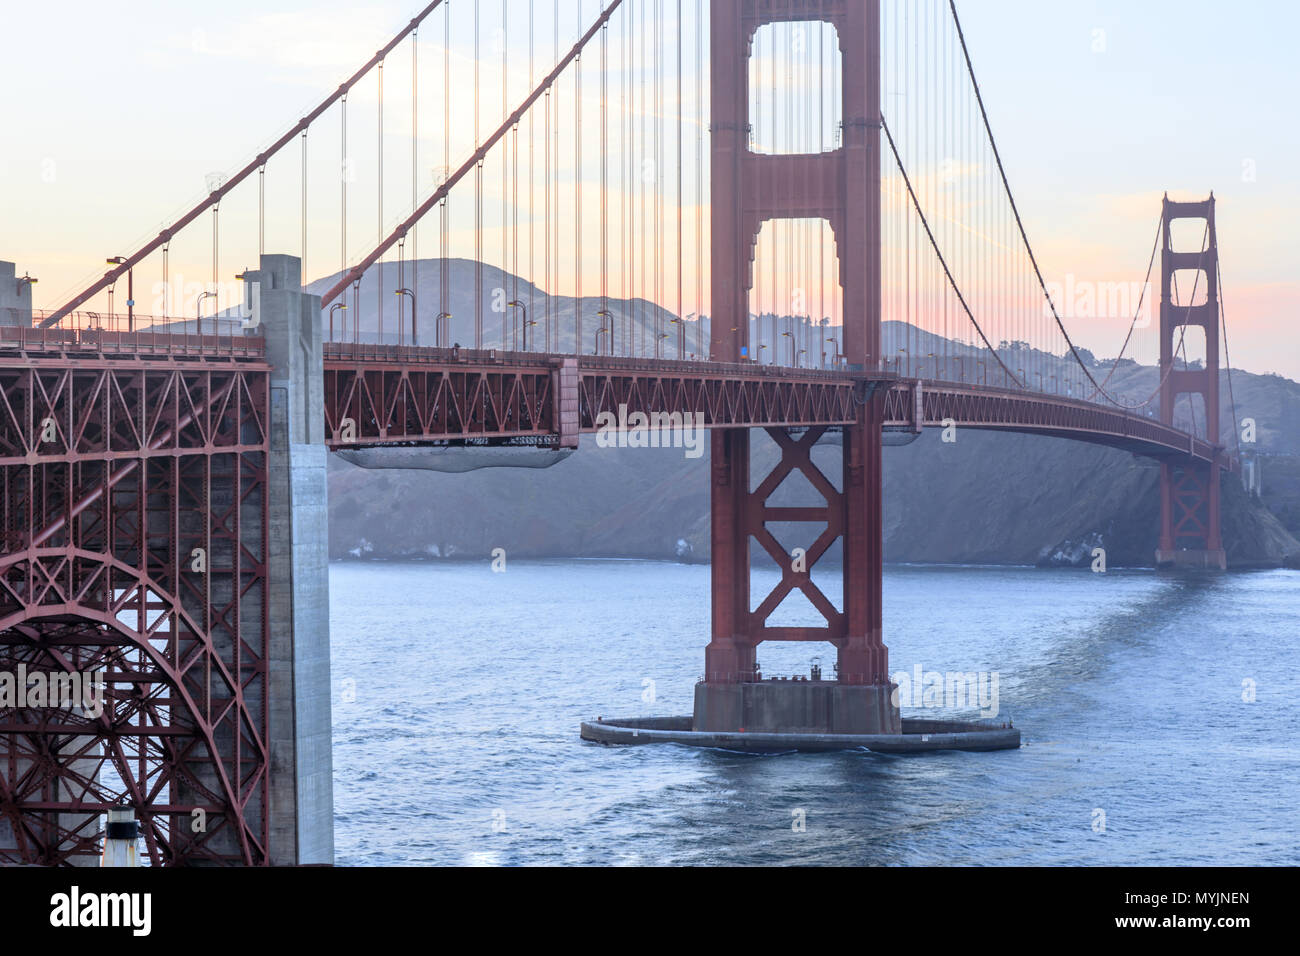 Sunset over the Golden Gate Bridge as seen from the span's southern end. - Stock Image